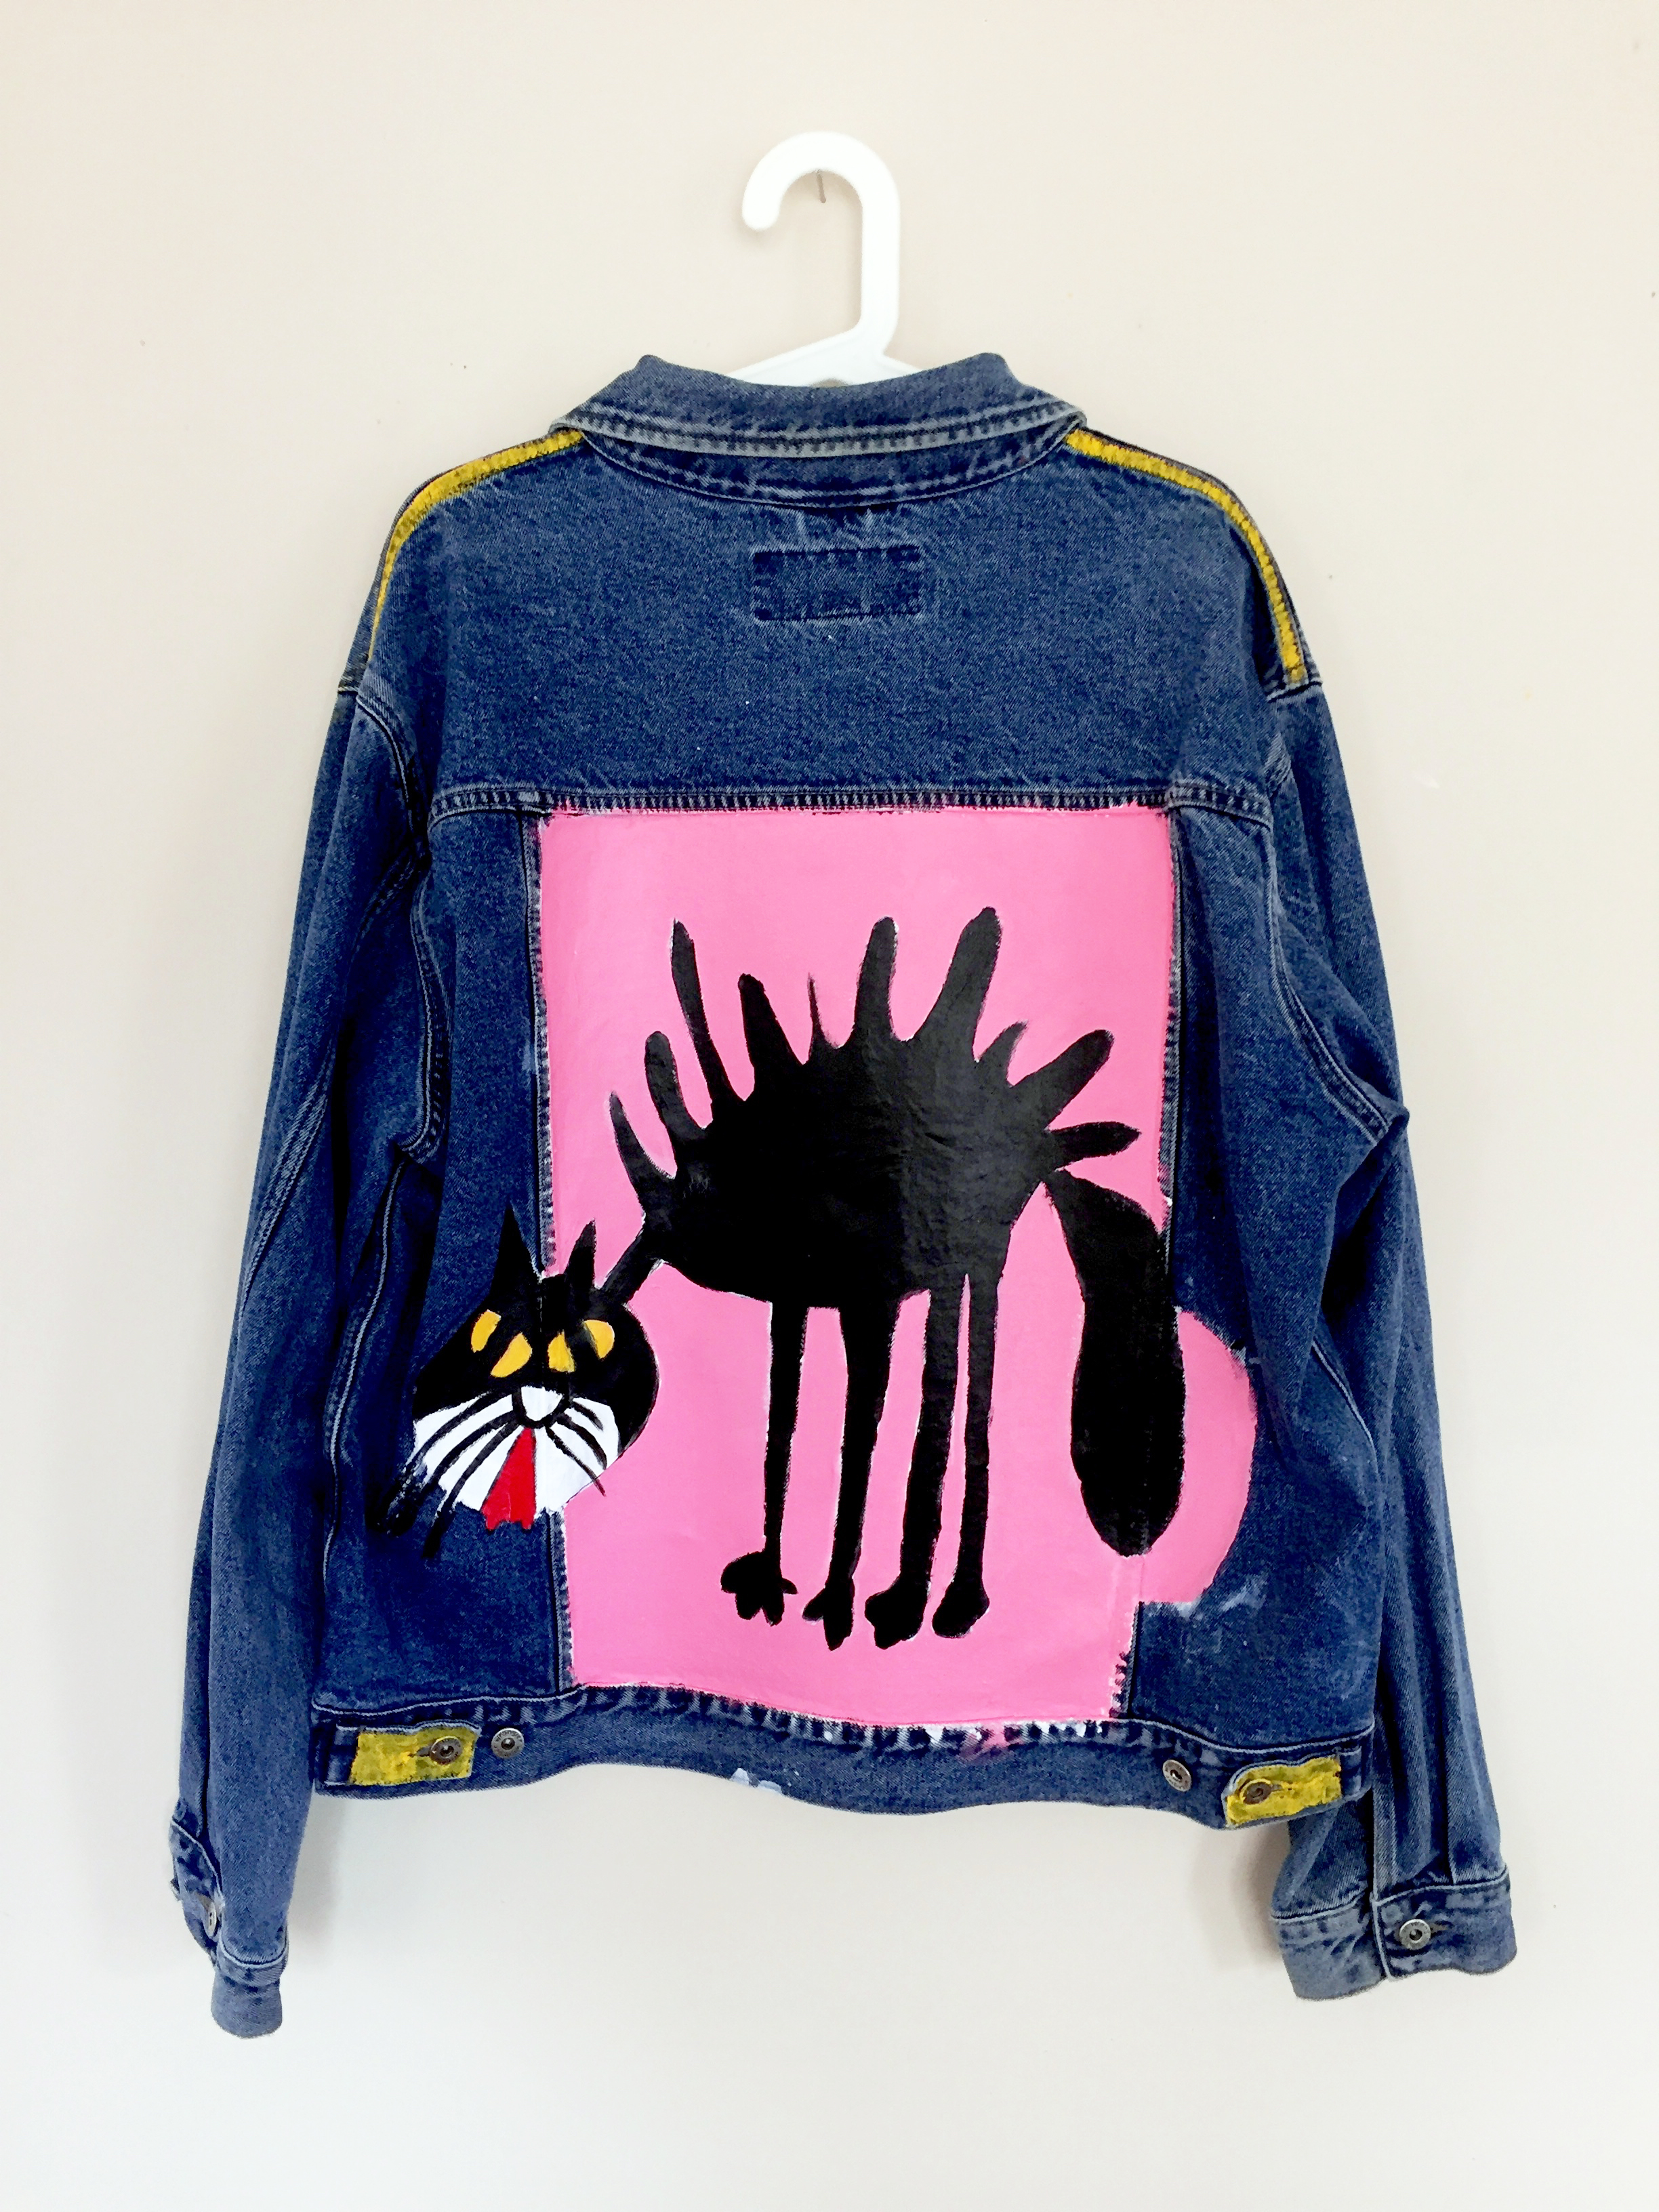 Cat Jacket X Lonerism Co X Rachel O'Donnell